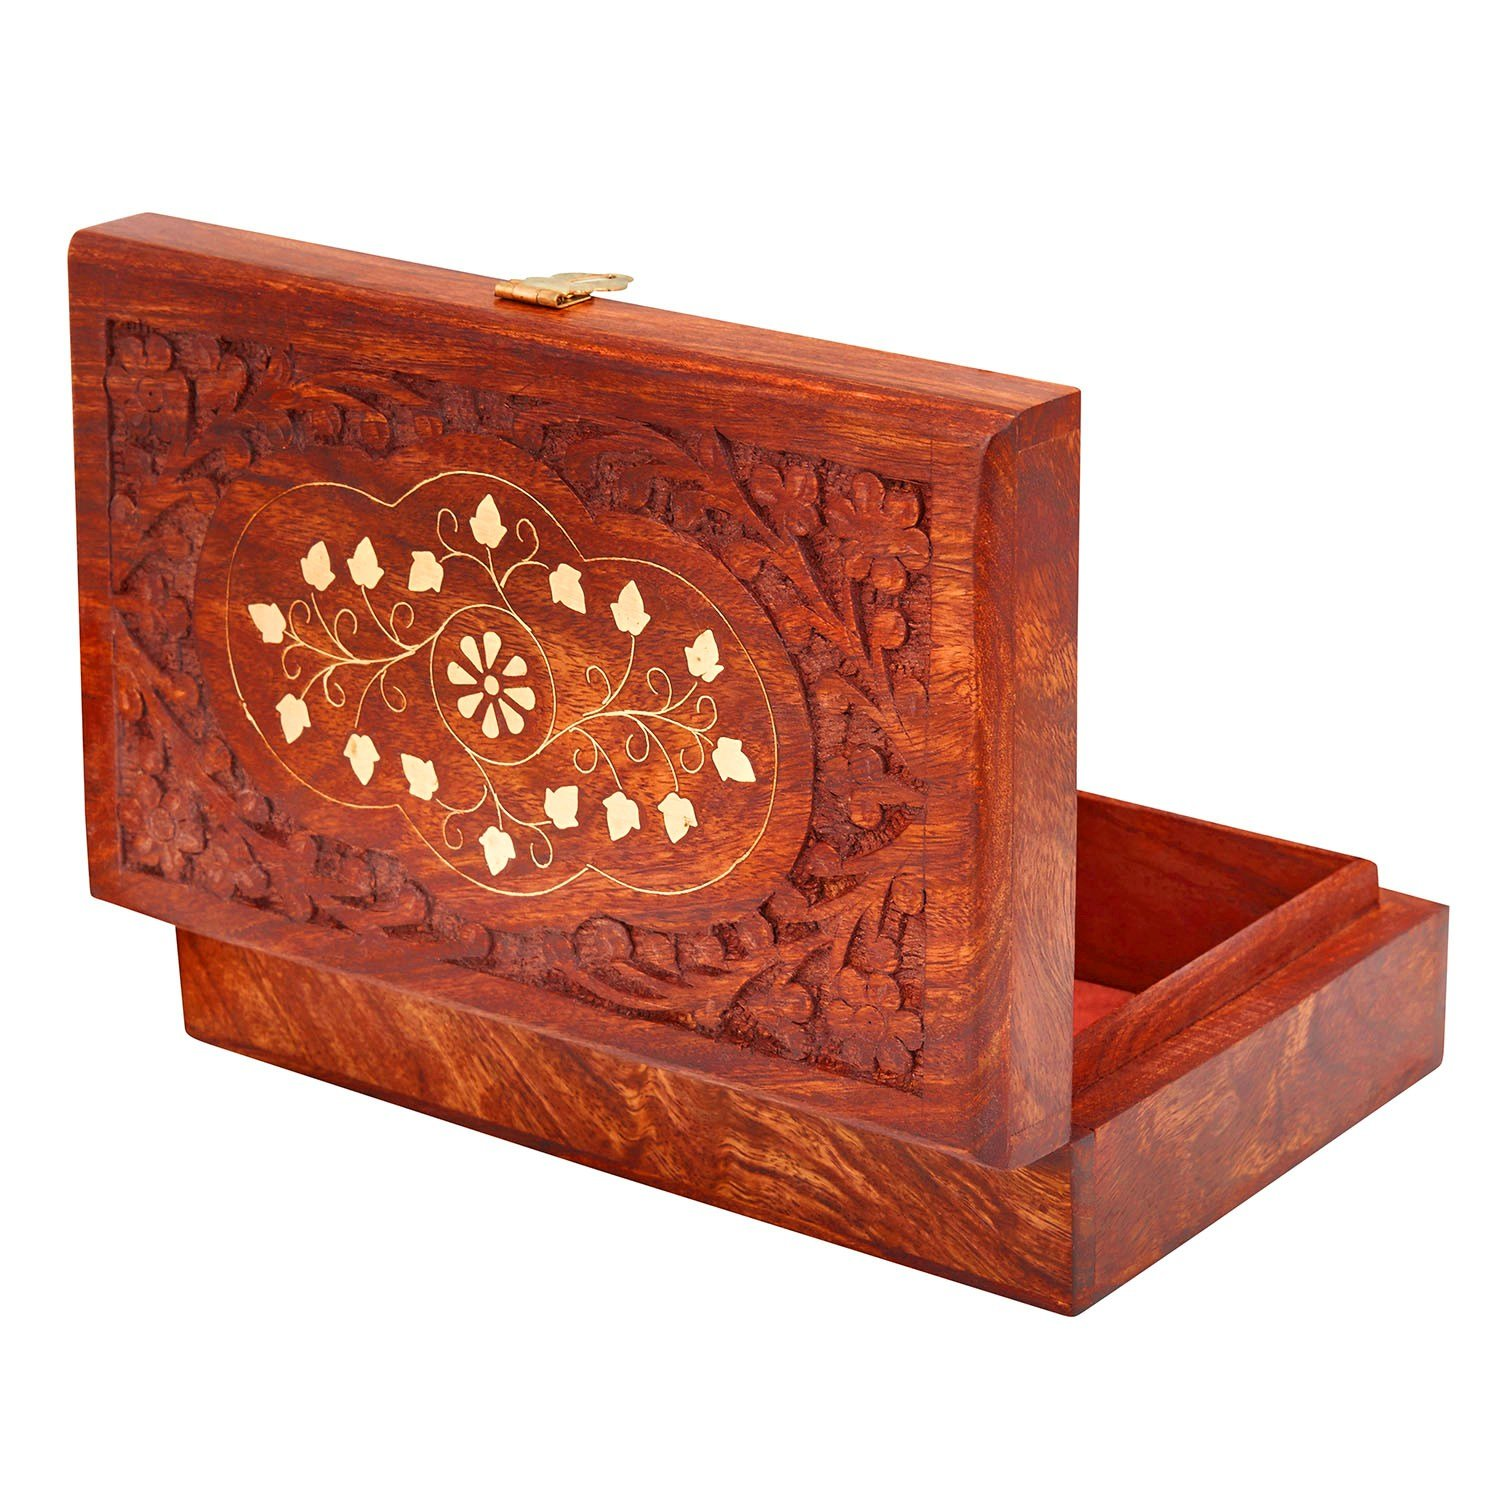 Great Birthday Gift Ideas Handmade Decorative Wooden Jewelry Box With Free Lock Key Organizer Keepsake Treasure Chest Trinket Holder